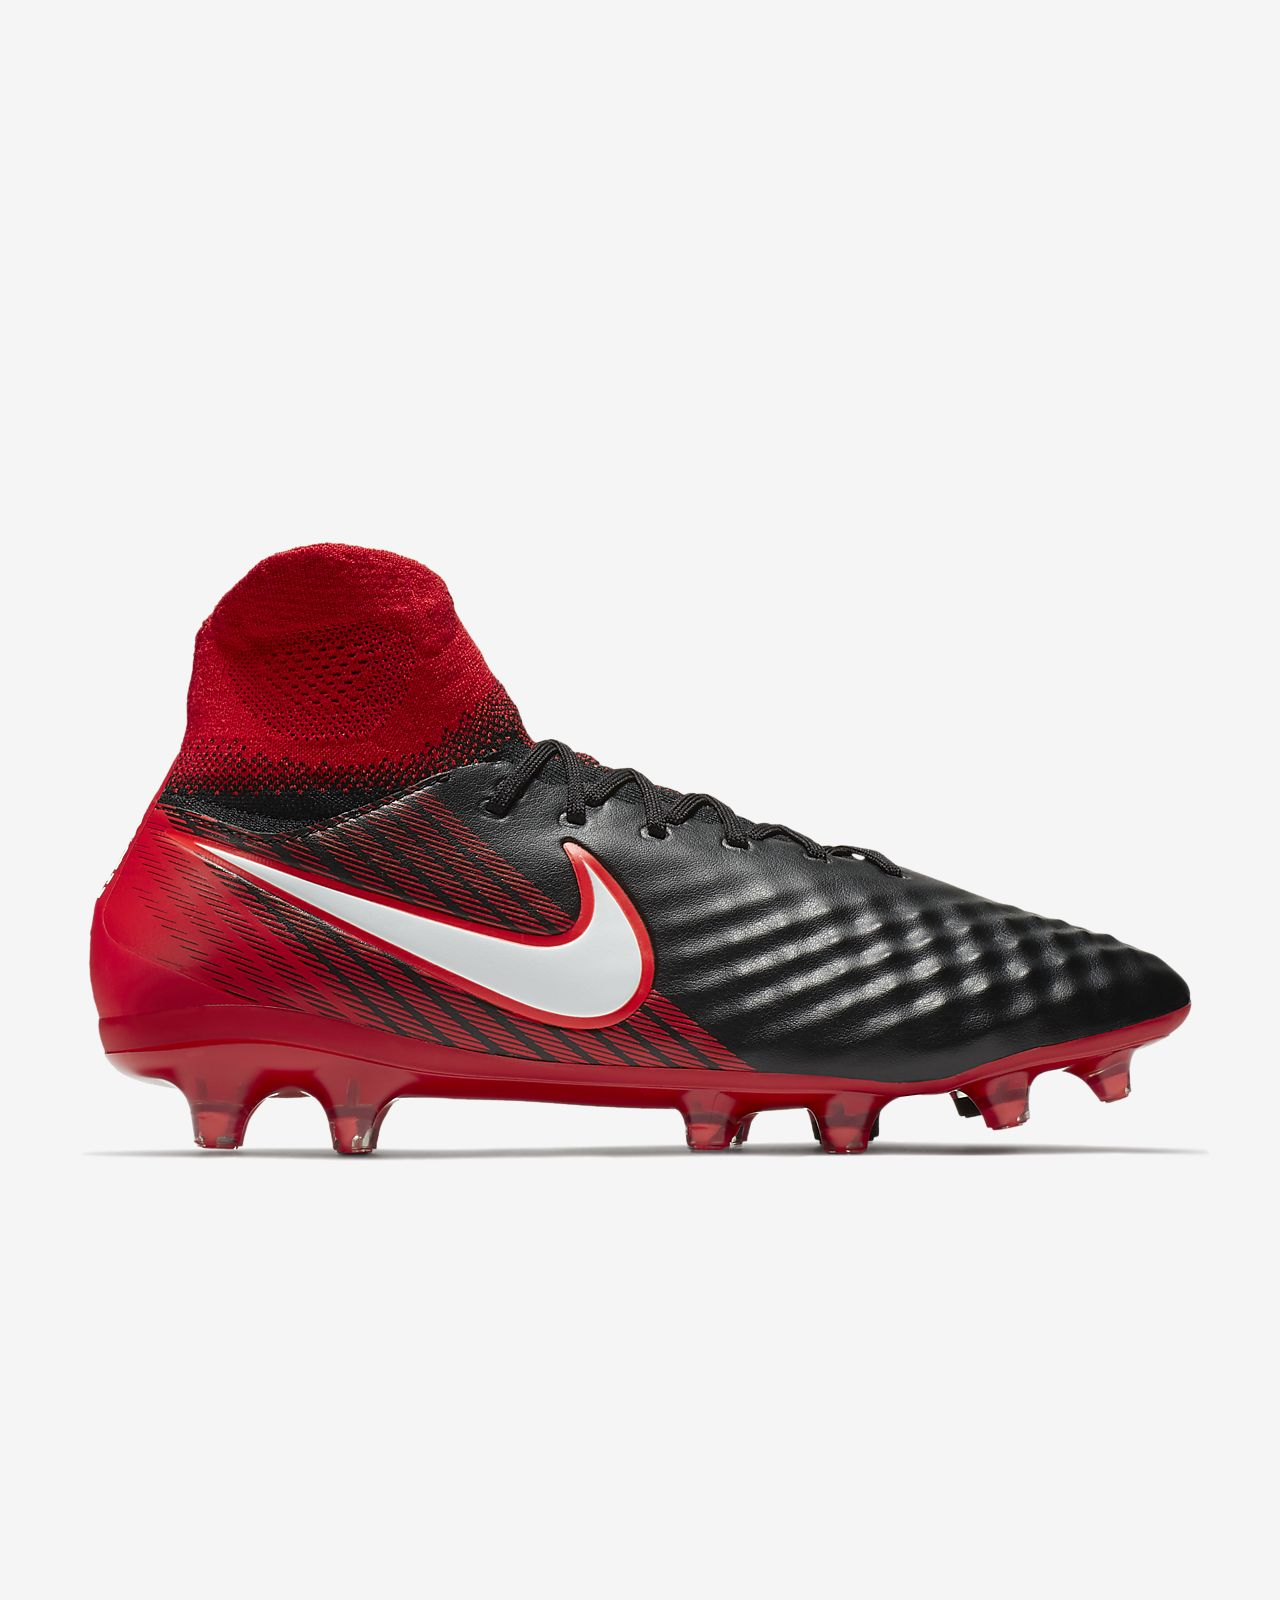 aac3f216eb85 nike magista red on sale   OFF37% Discounts